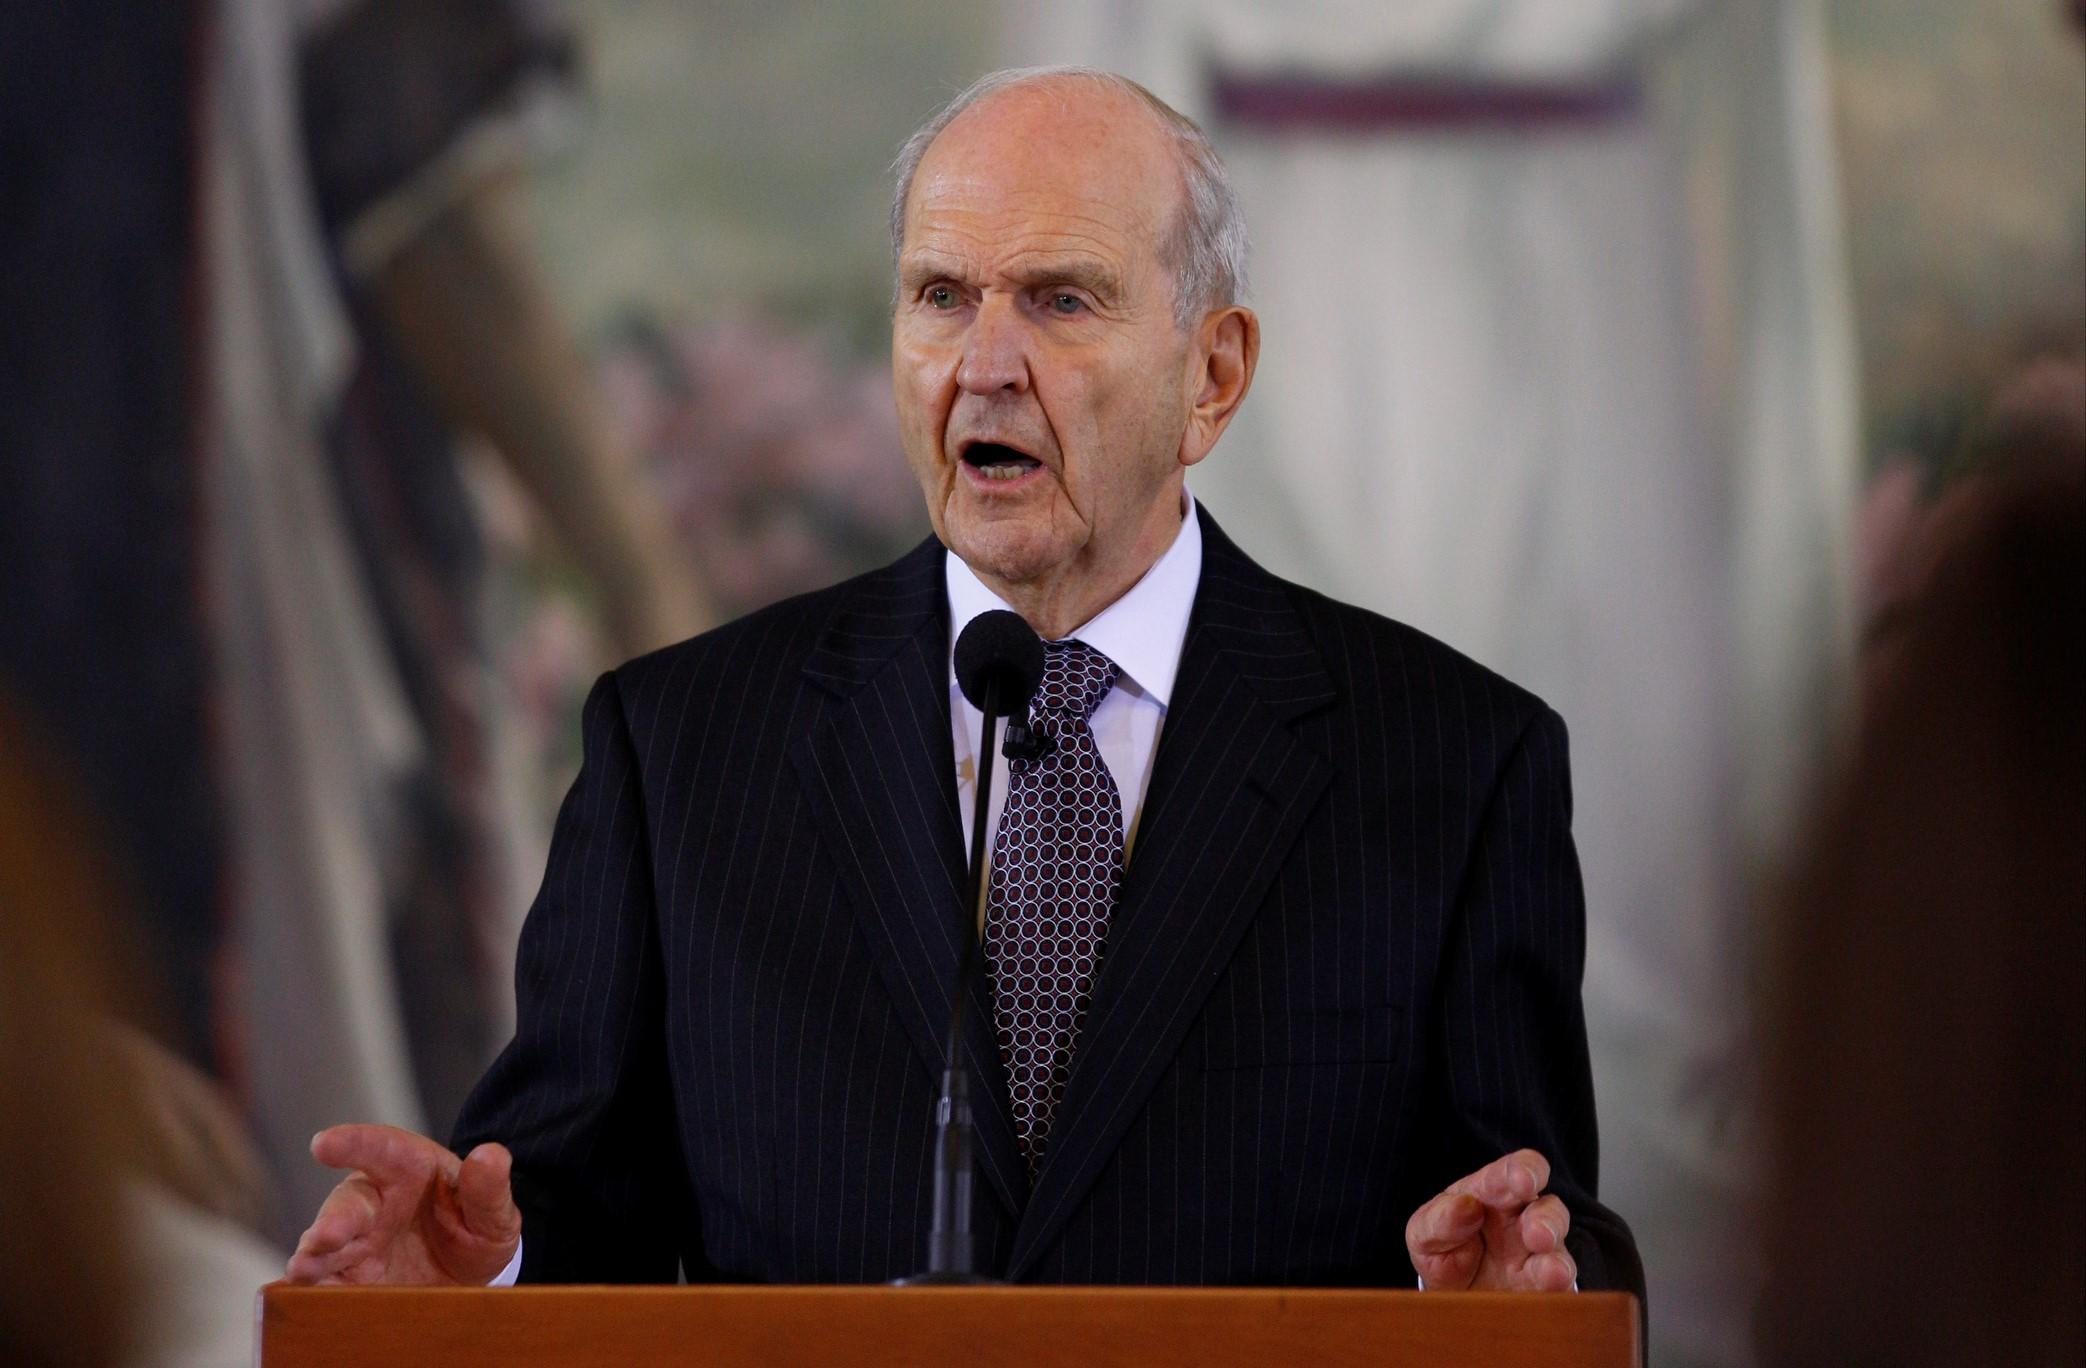 LDS Church announces new leadership